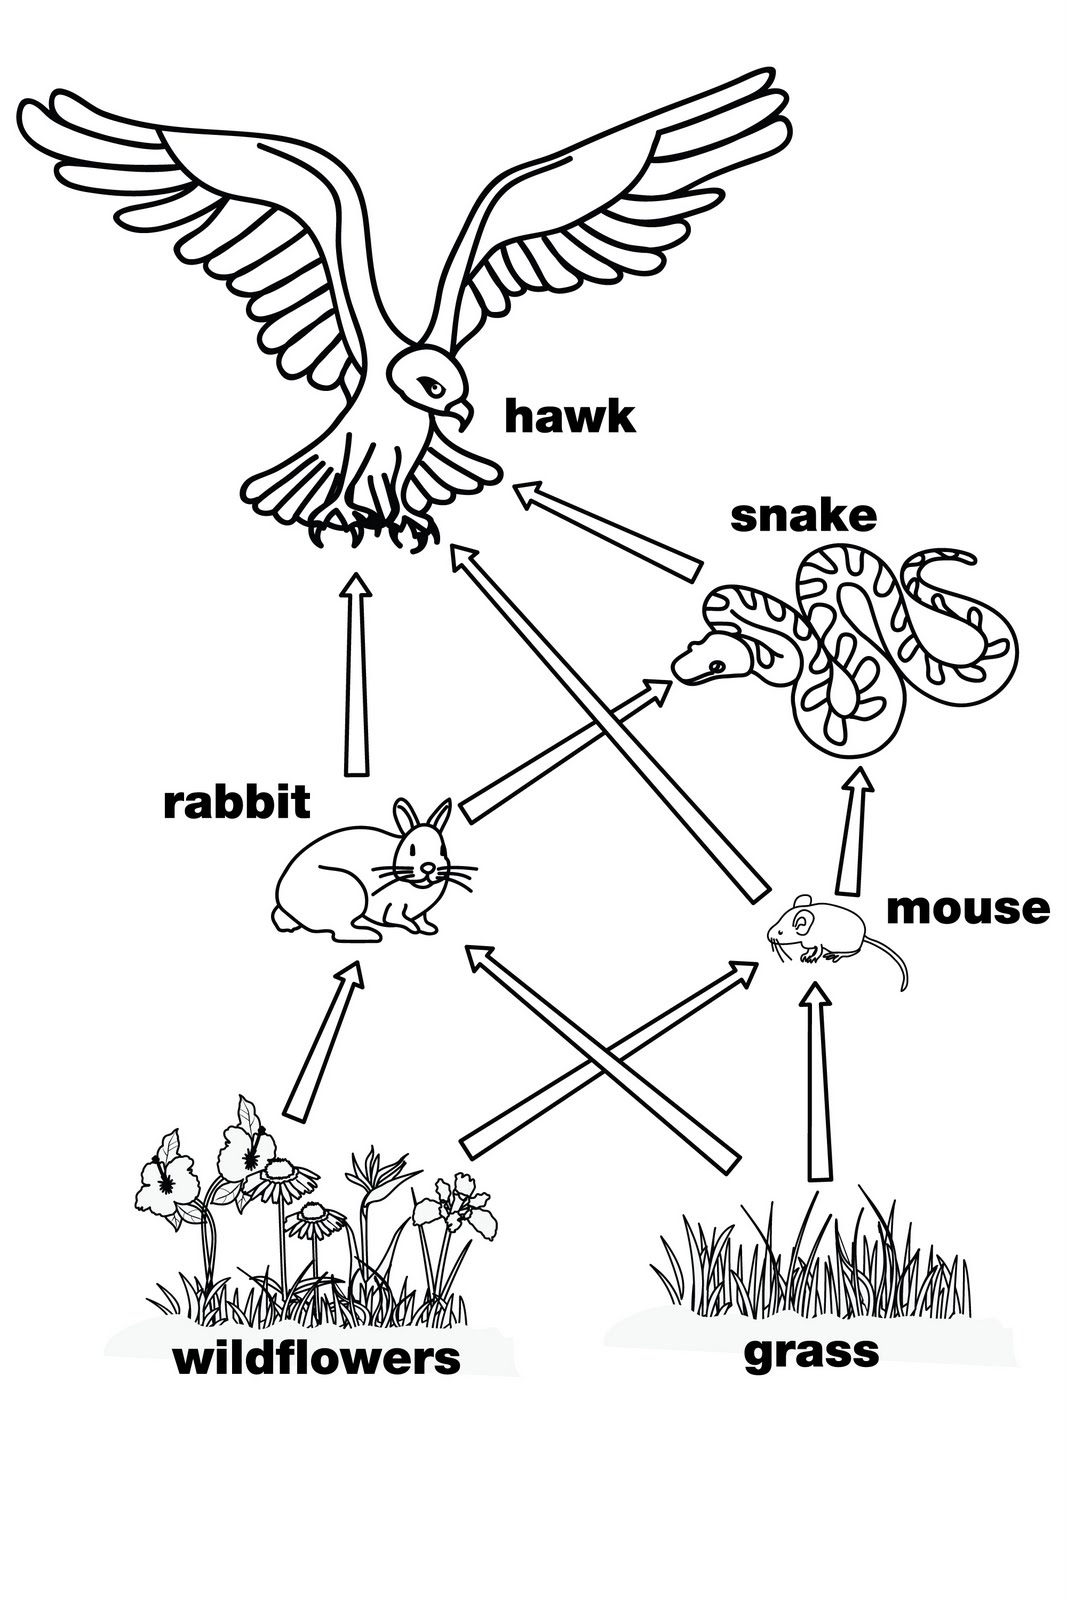 Food Chain Clipart Black And White.